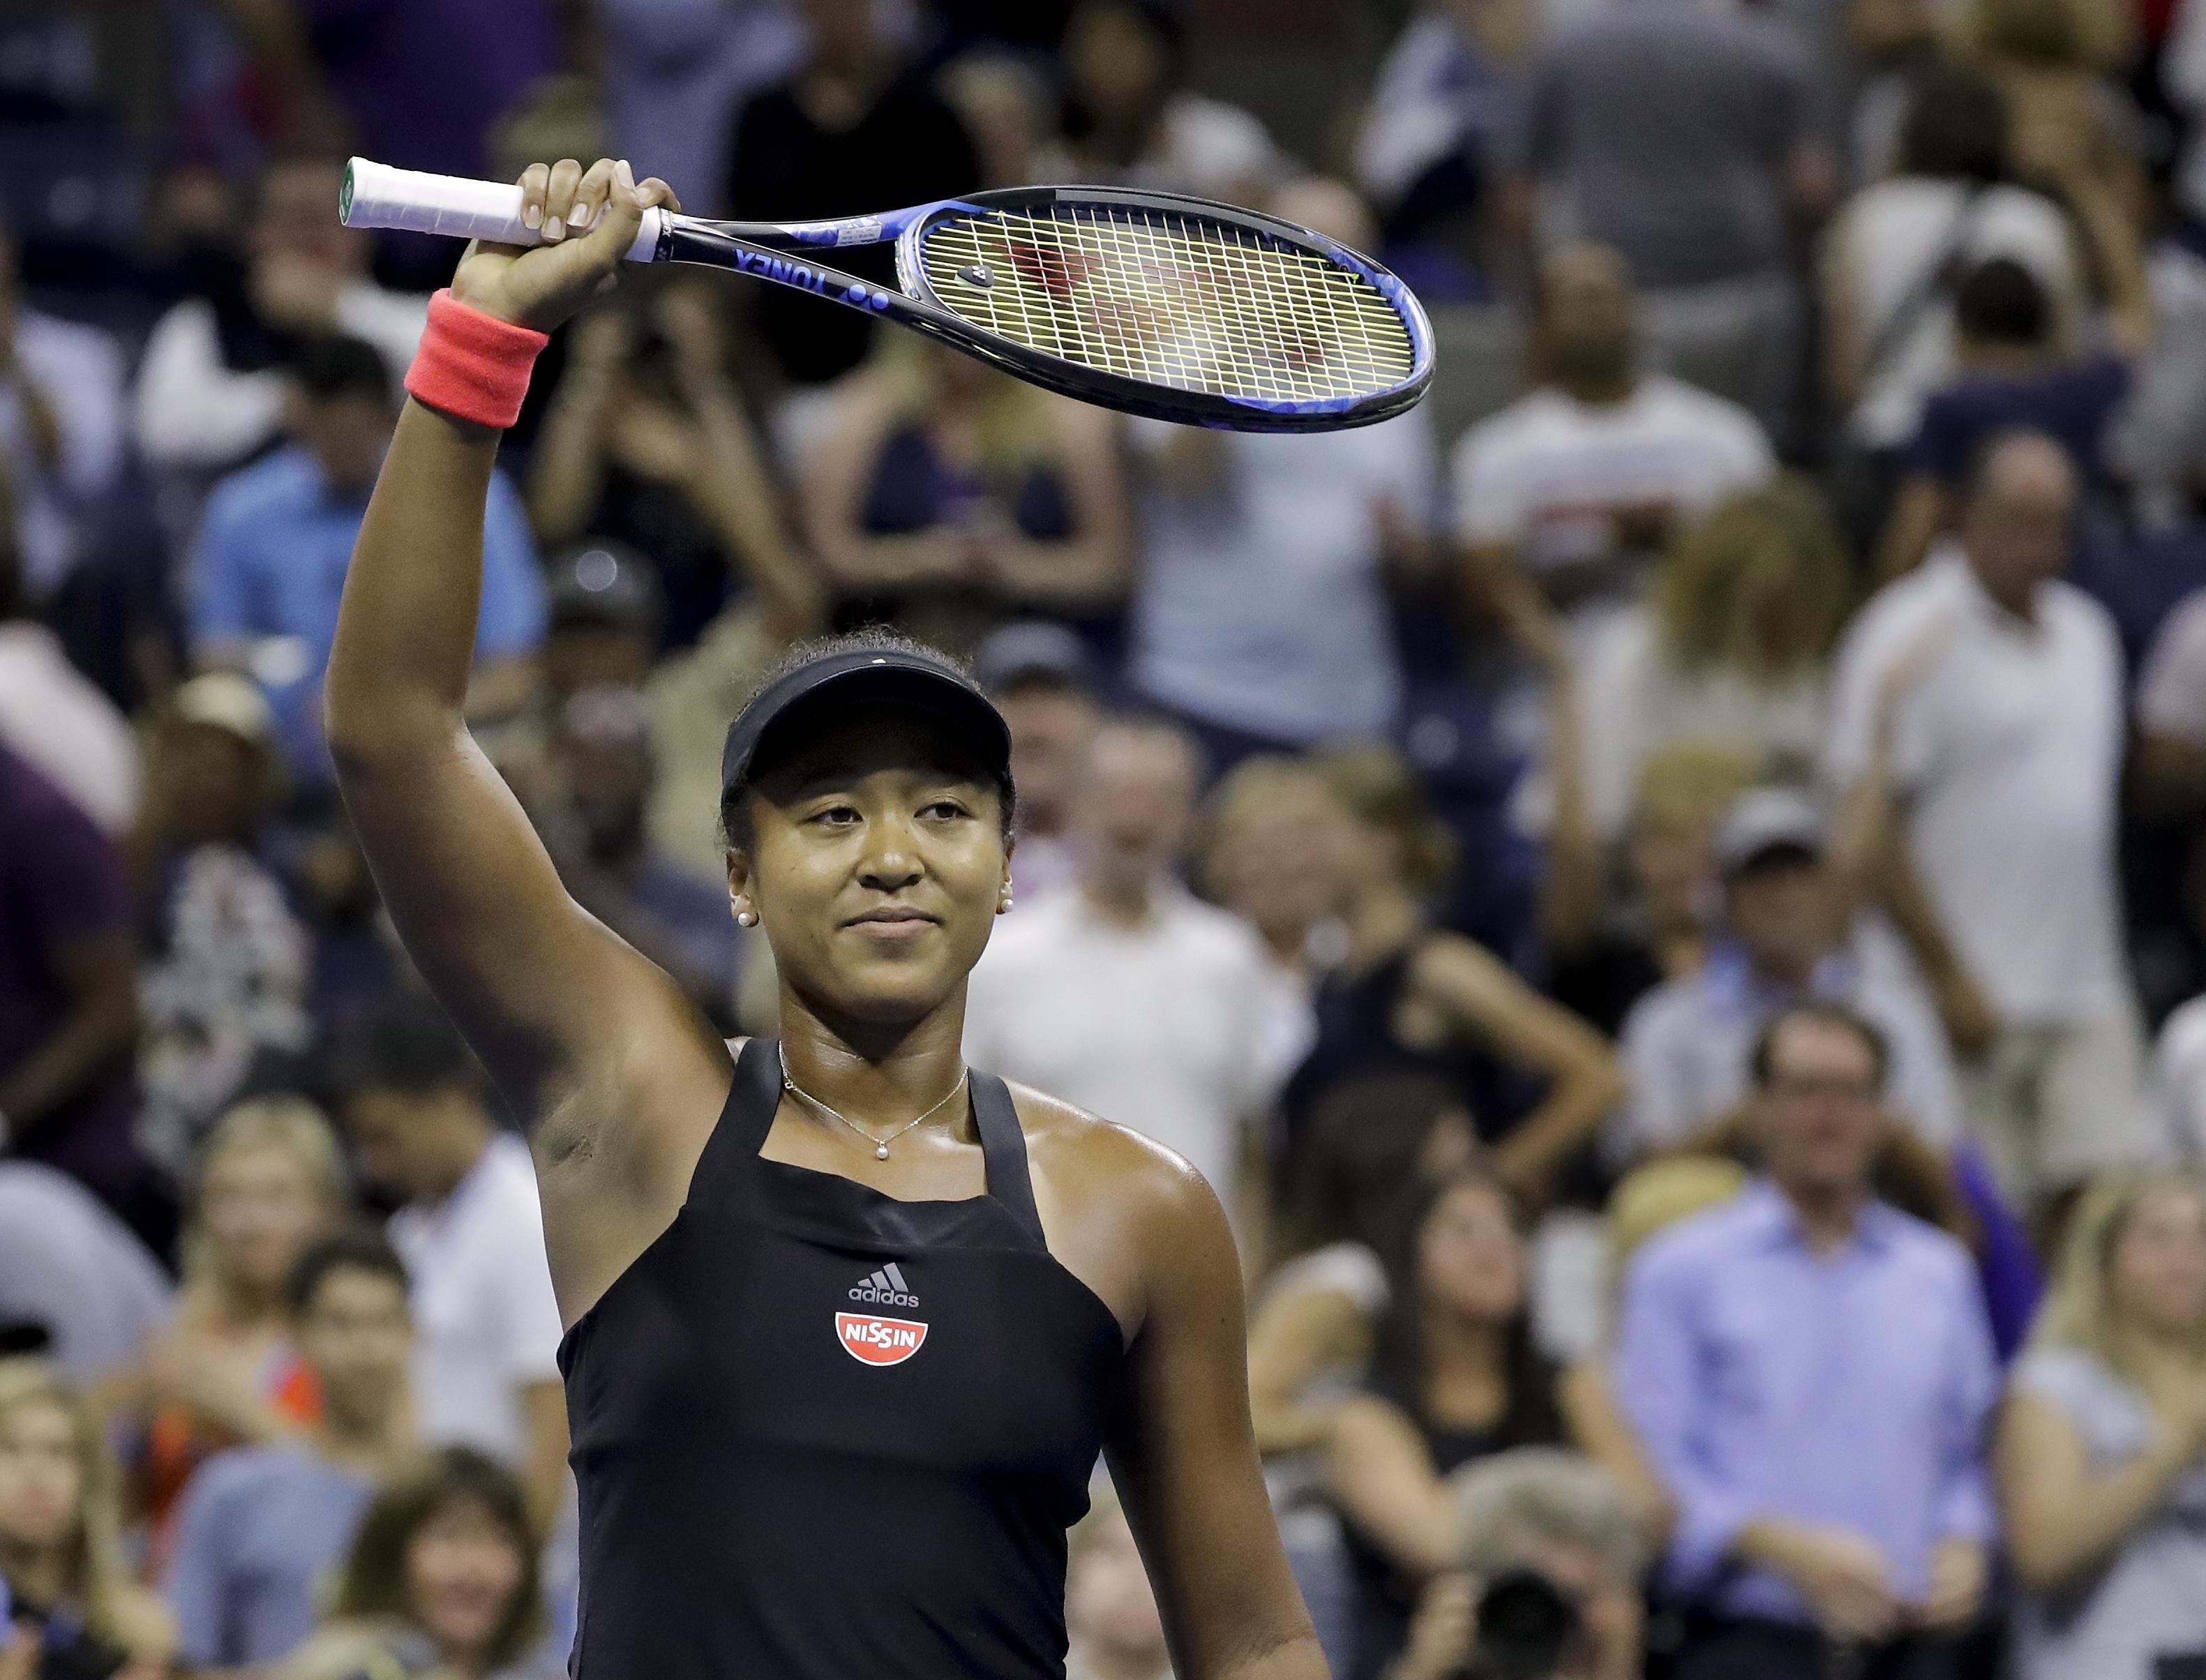 Naomi Osaka will take on Serena Williams at Flushing Meadows